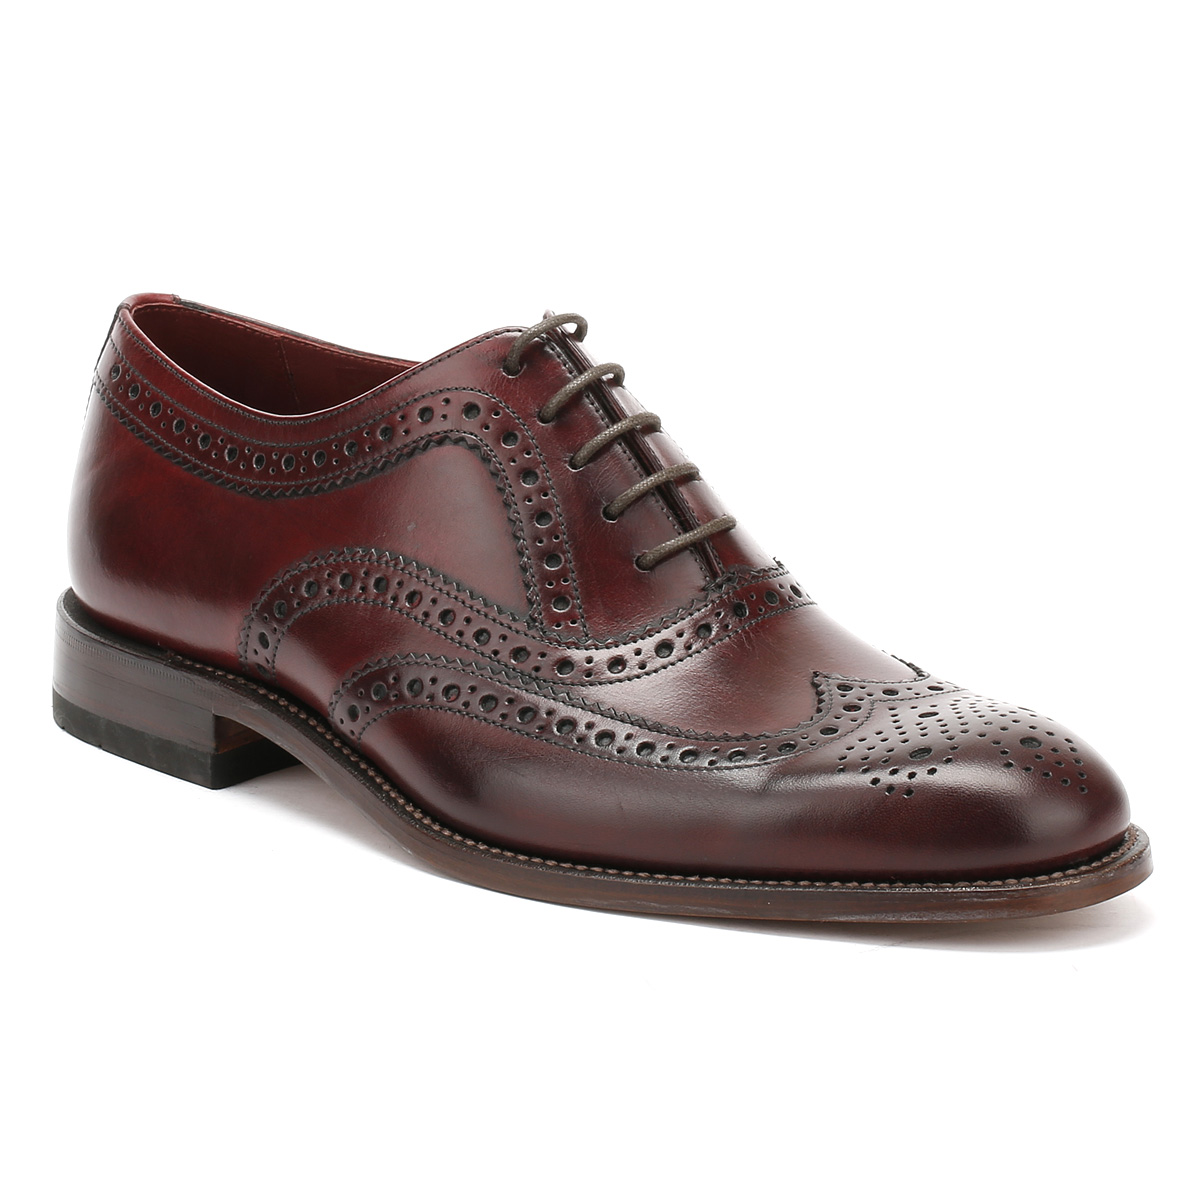 loake mens brogue shoes burgundy fearnley smart casual